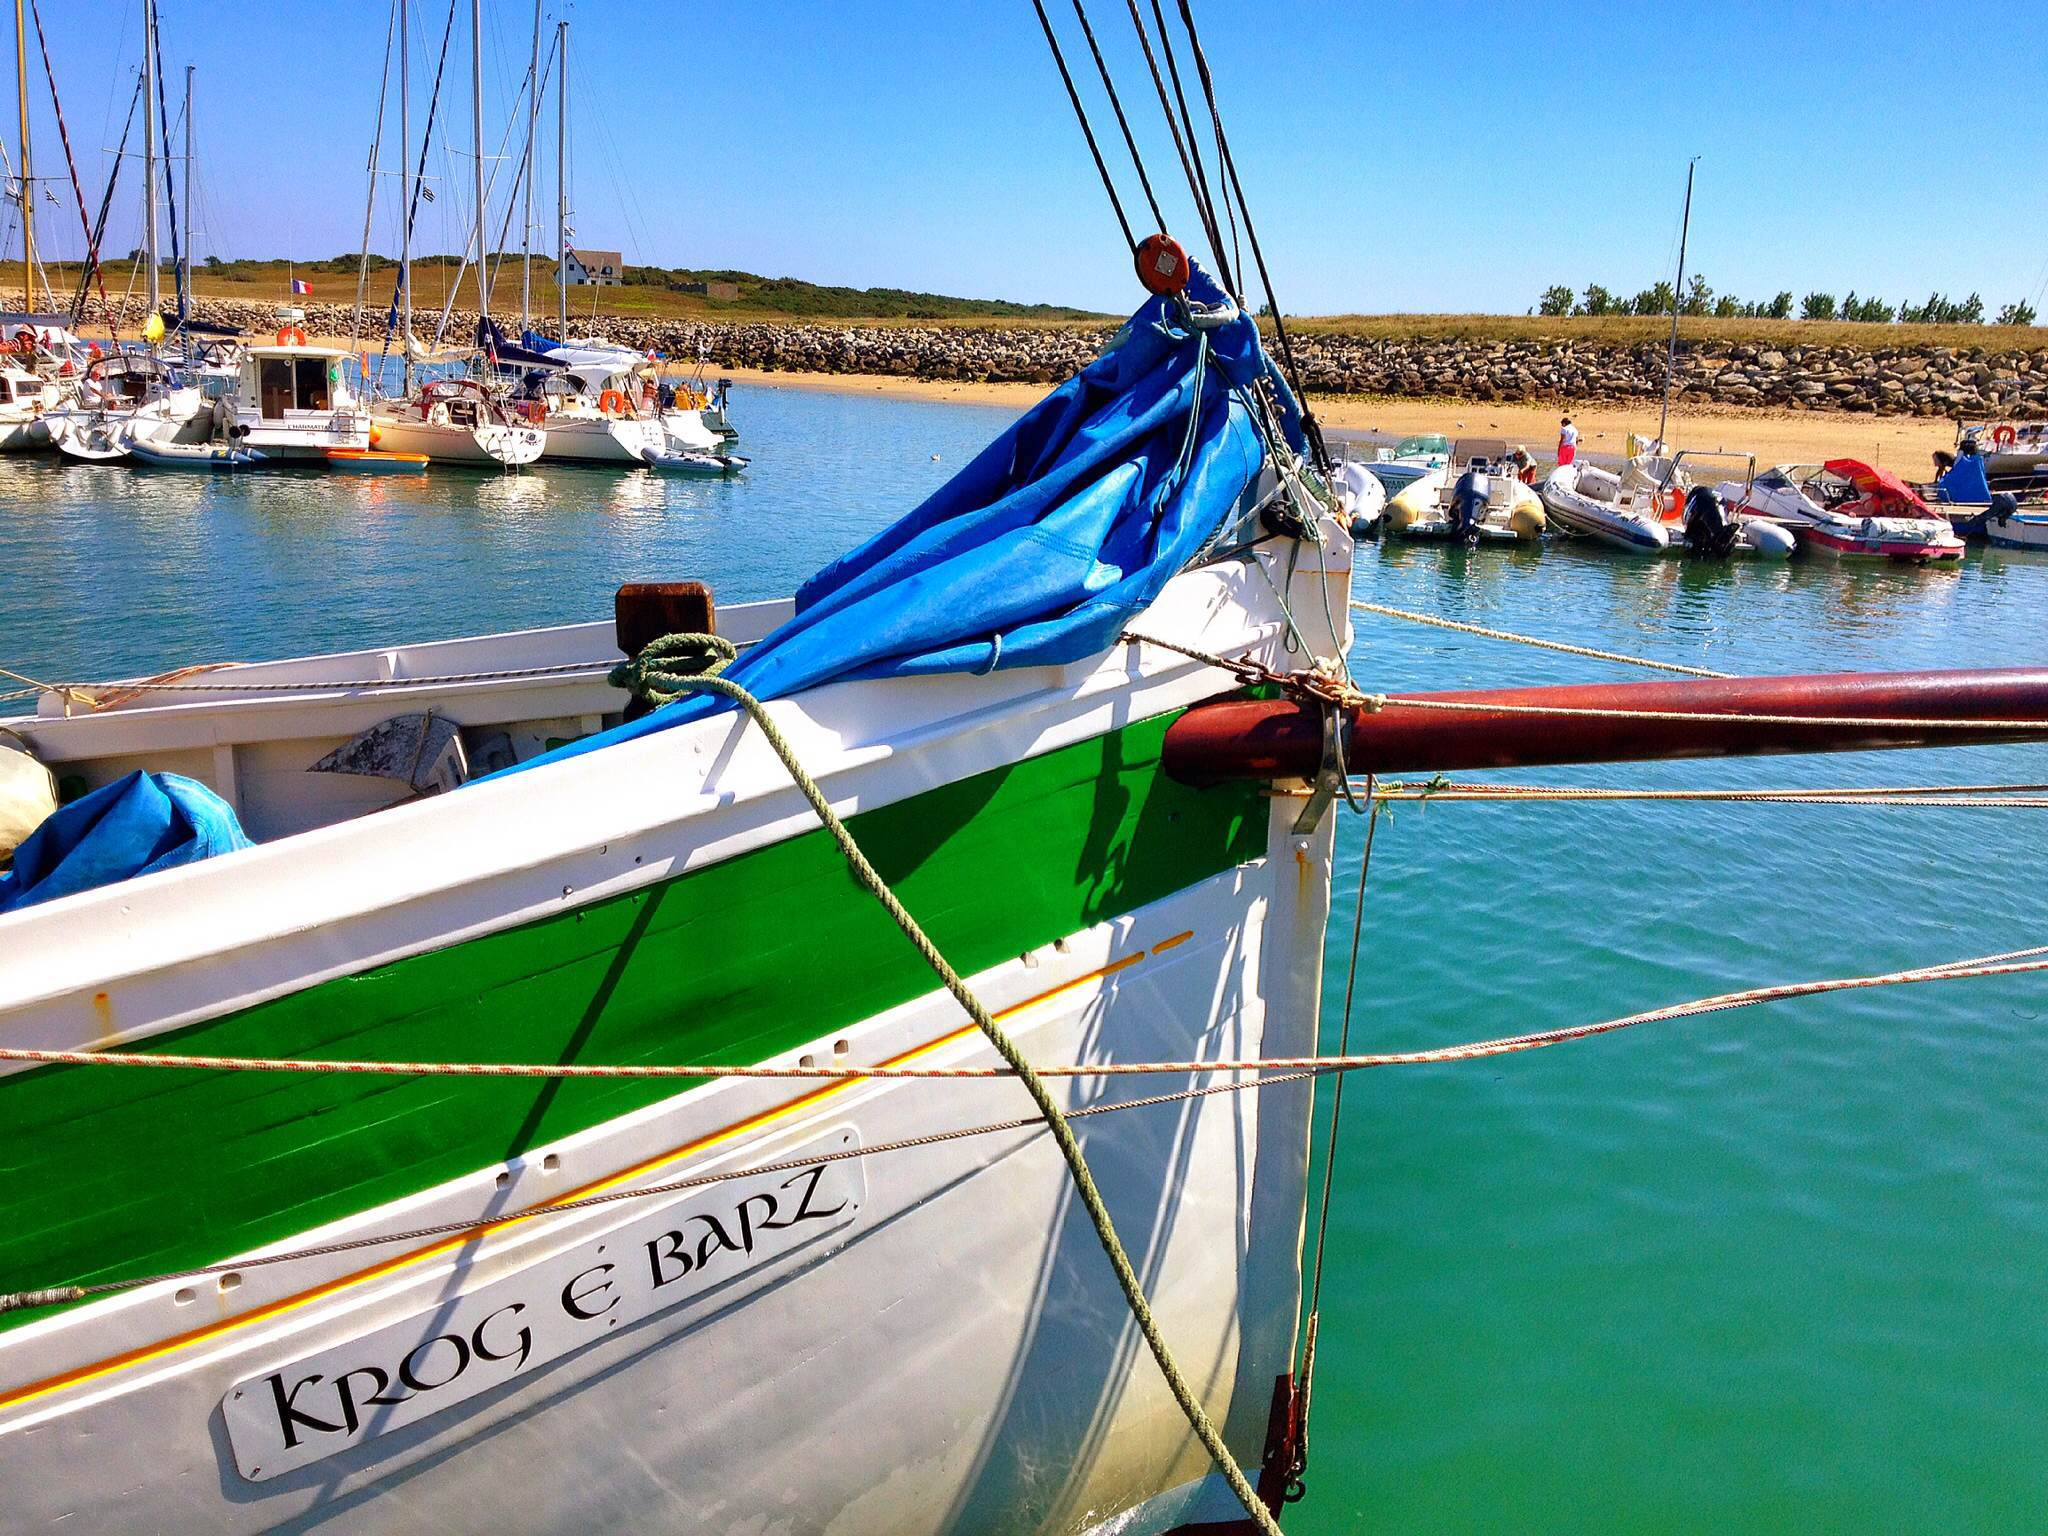 The Krog e Barz sailing boat in Brittany